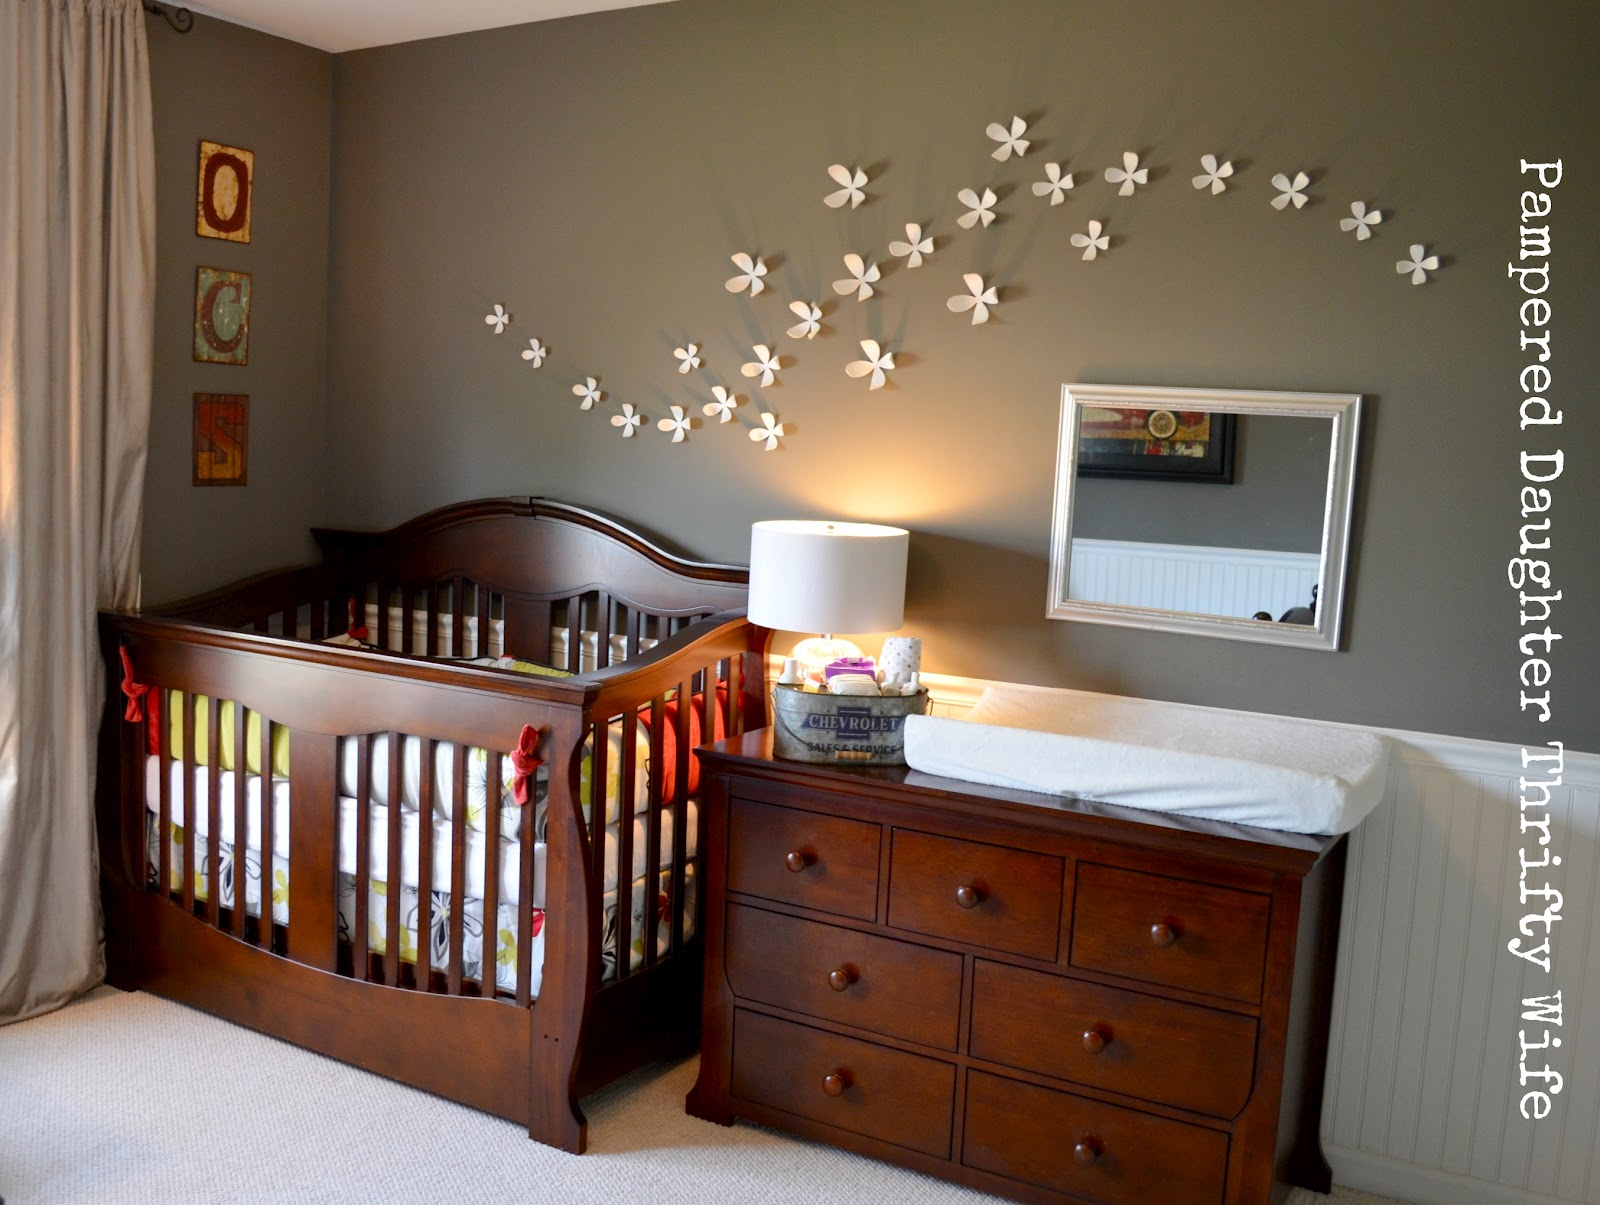 an adorable boy 39 s nursery by pampered daughter thrifty wife